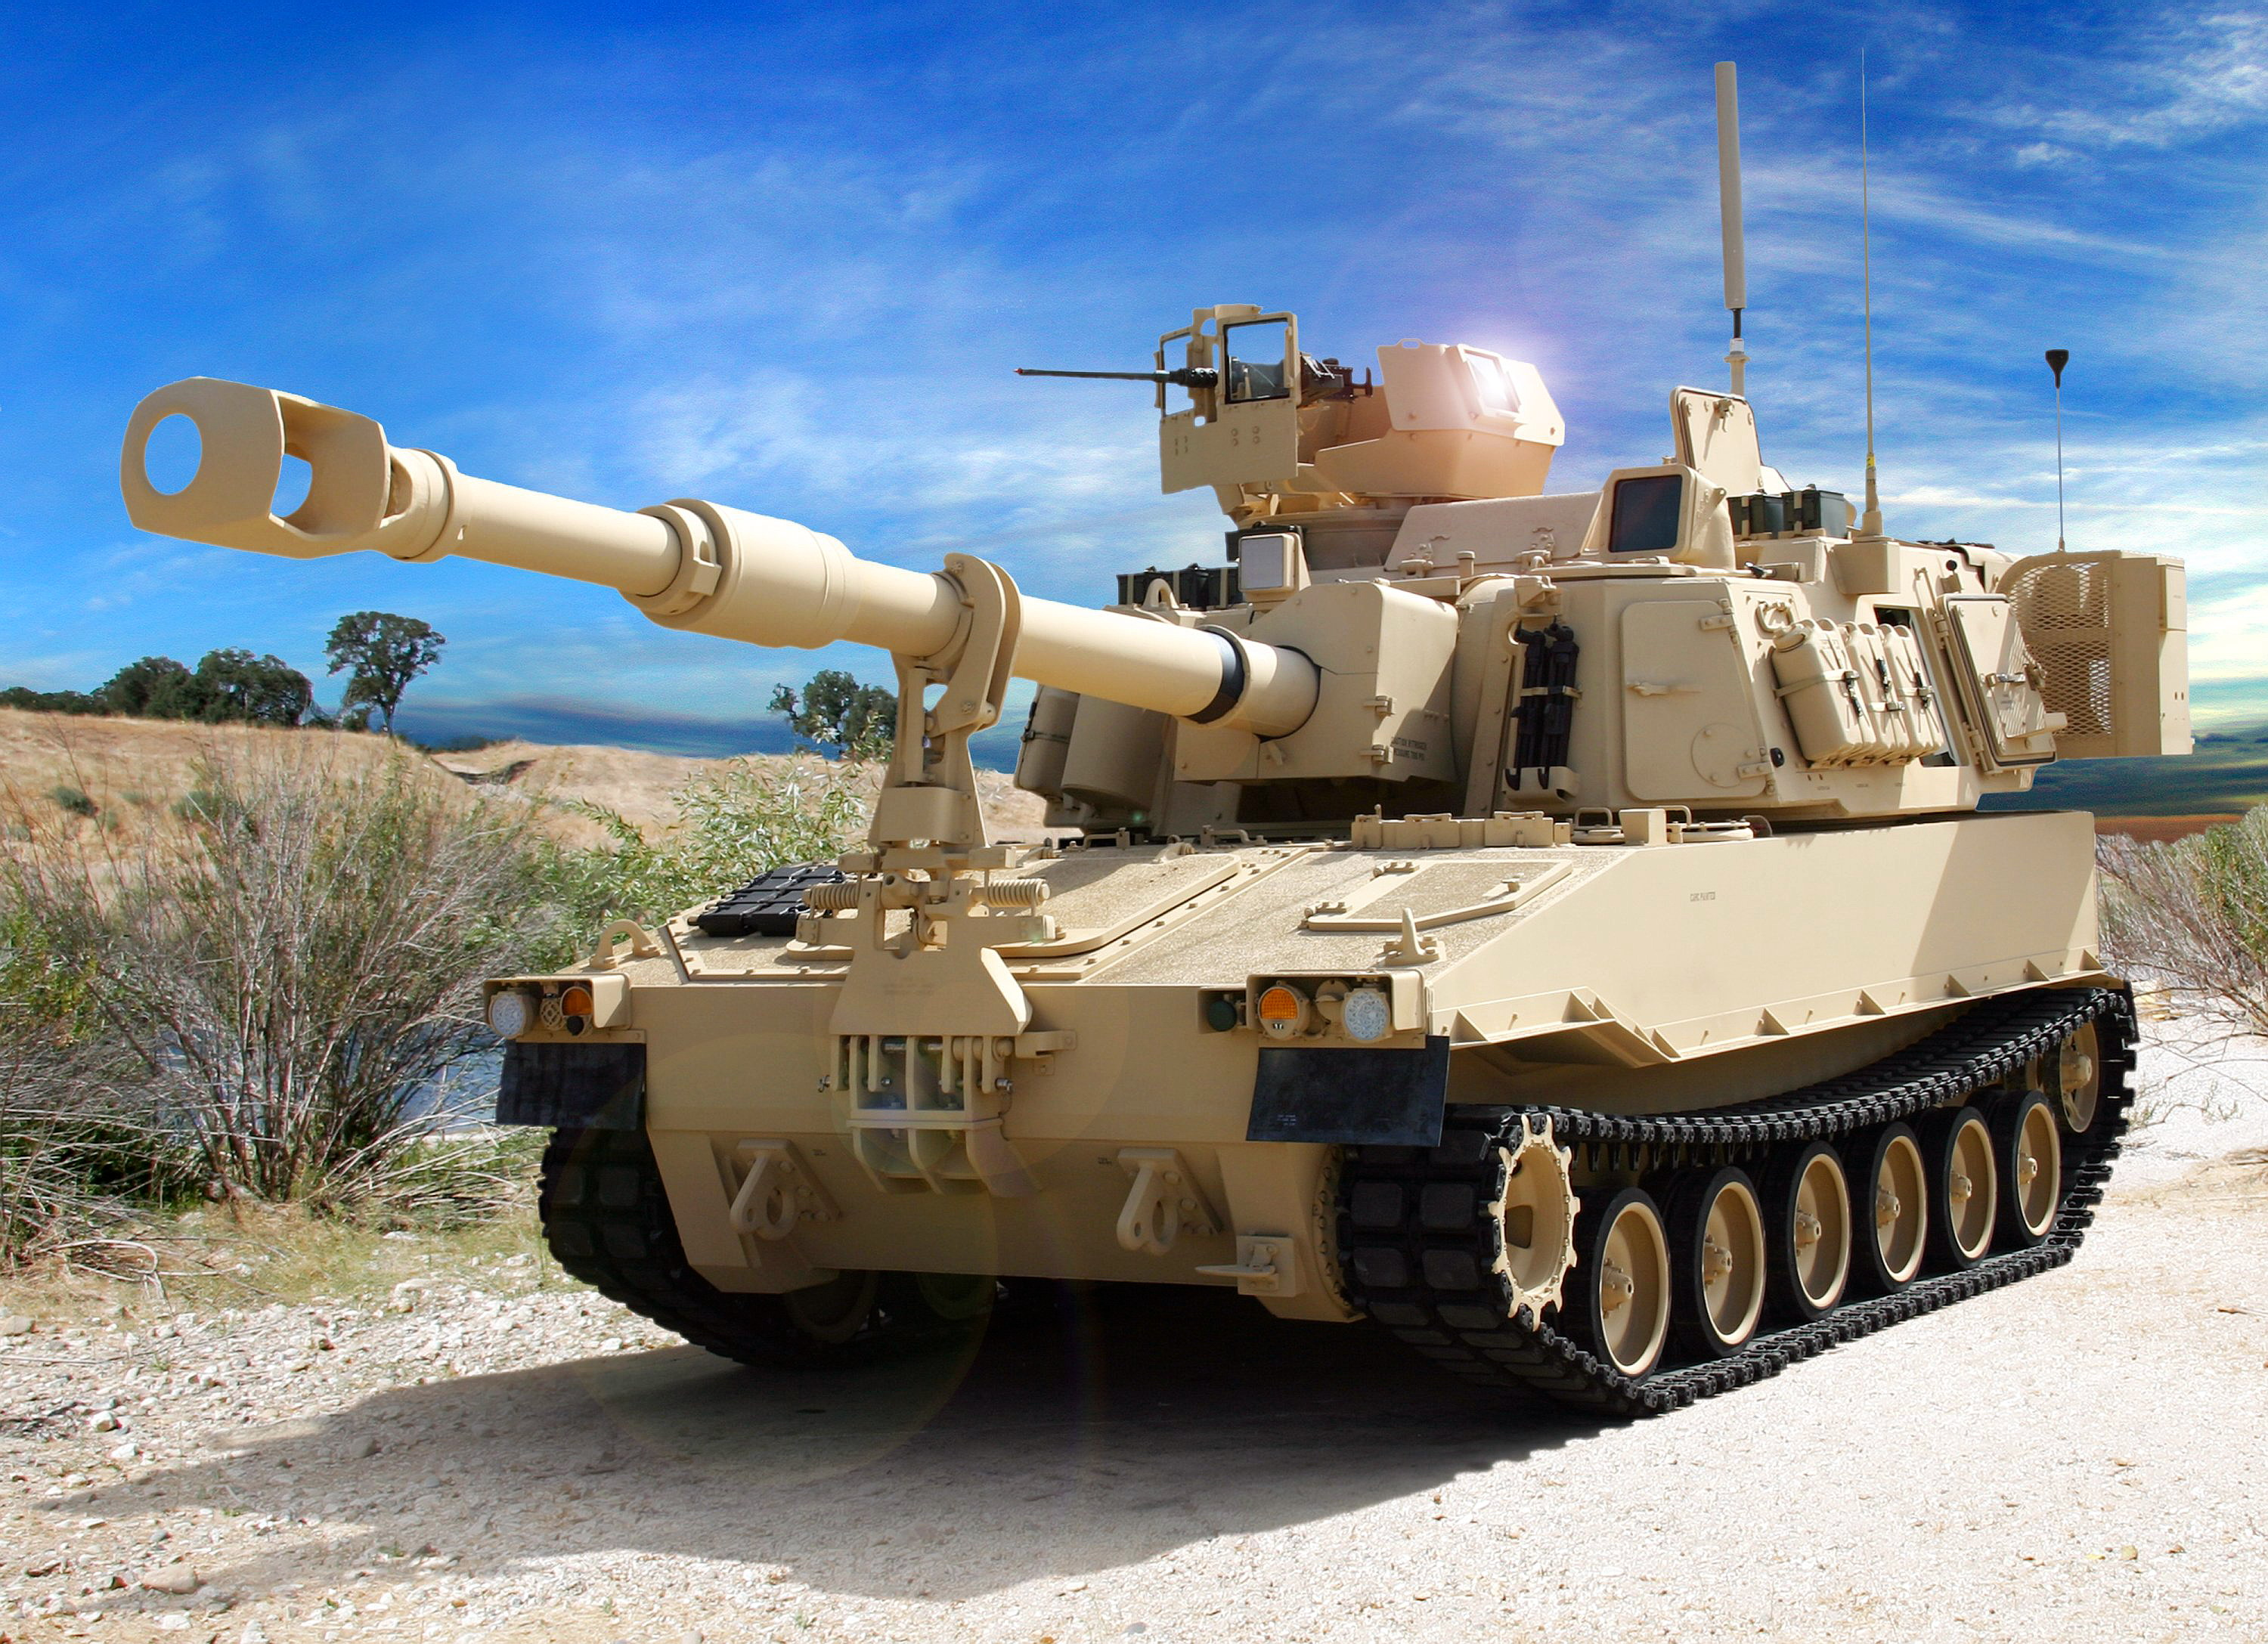 Tank Full HD Wallpaper and Background Image | 3000x2175 | ID:293973